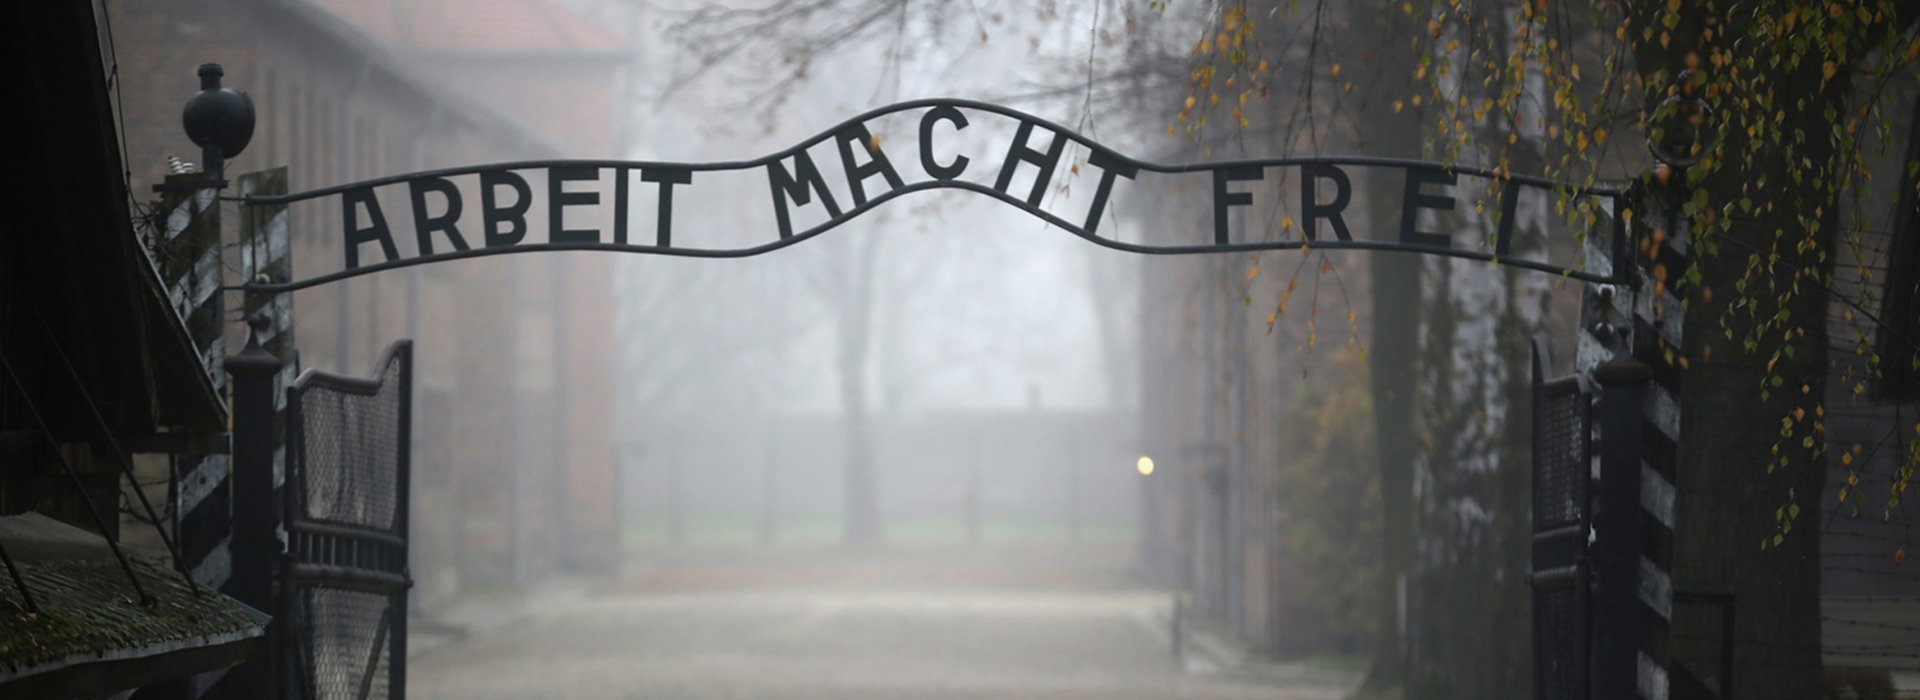 The main gate to Concentration Camp Auschwitz